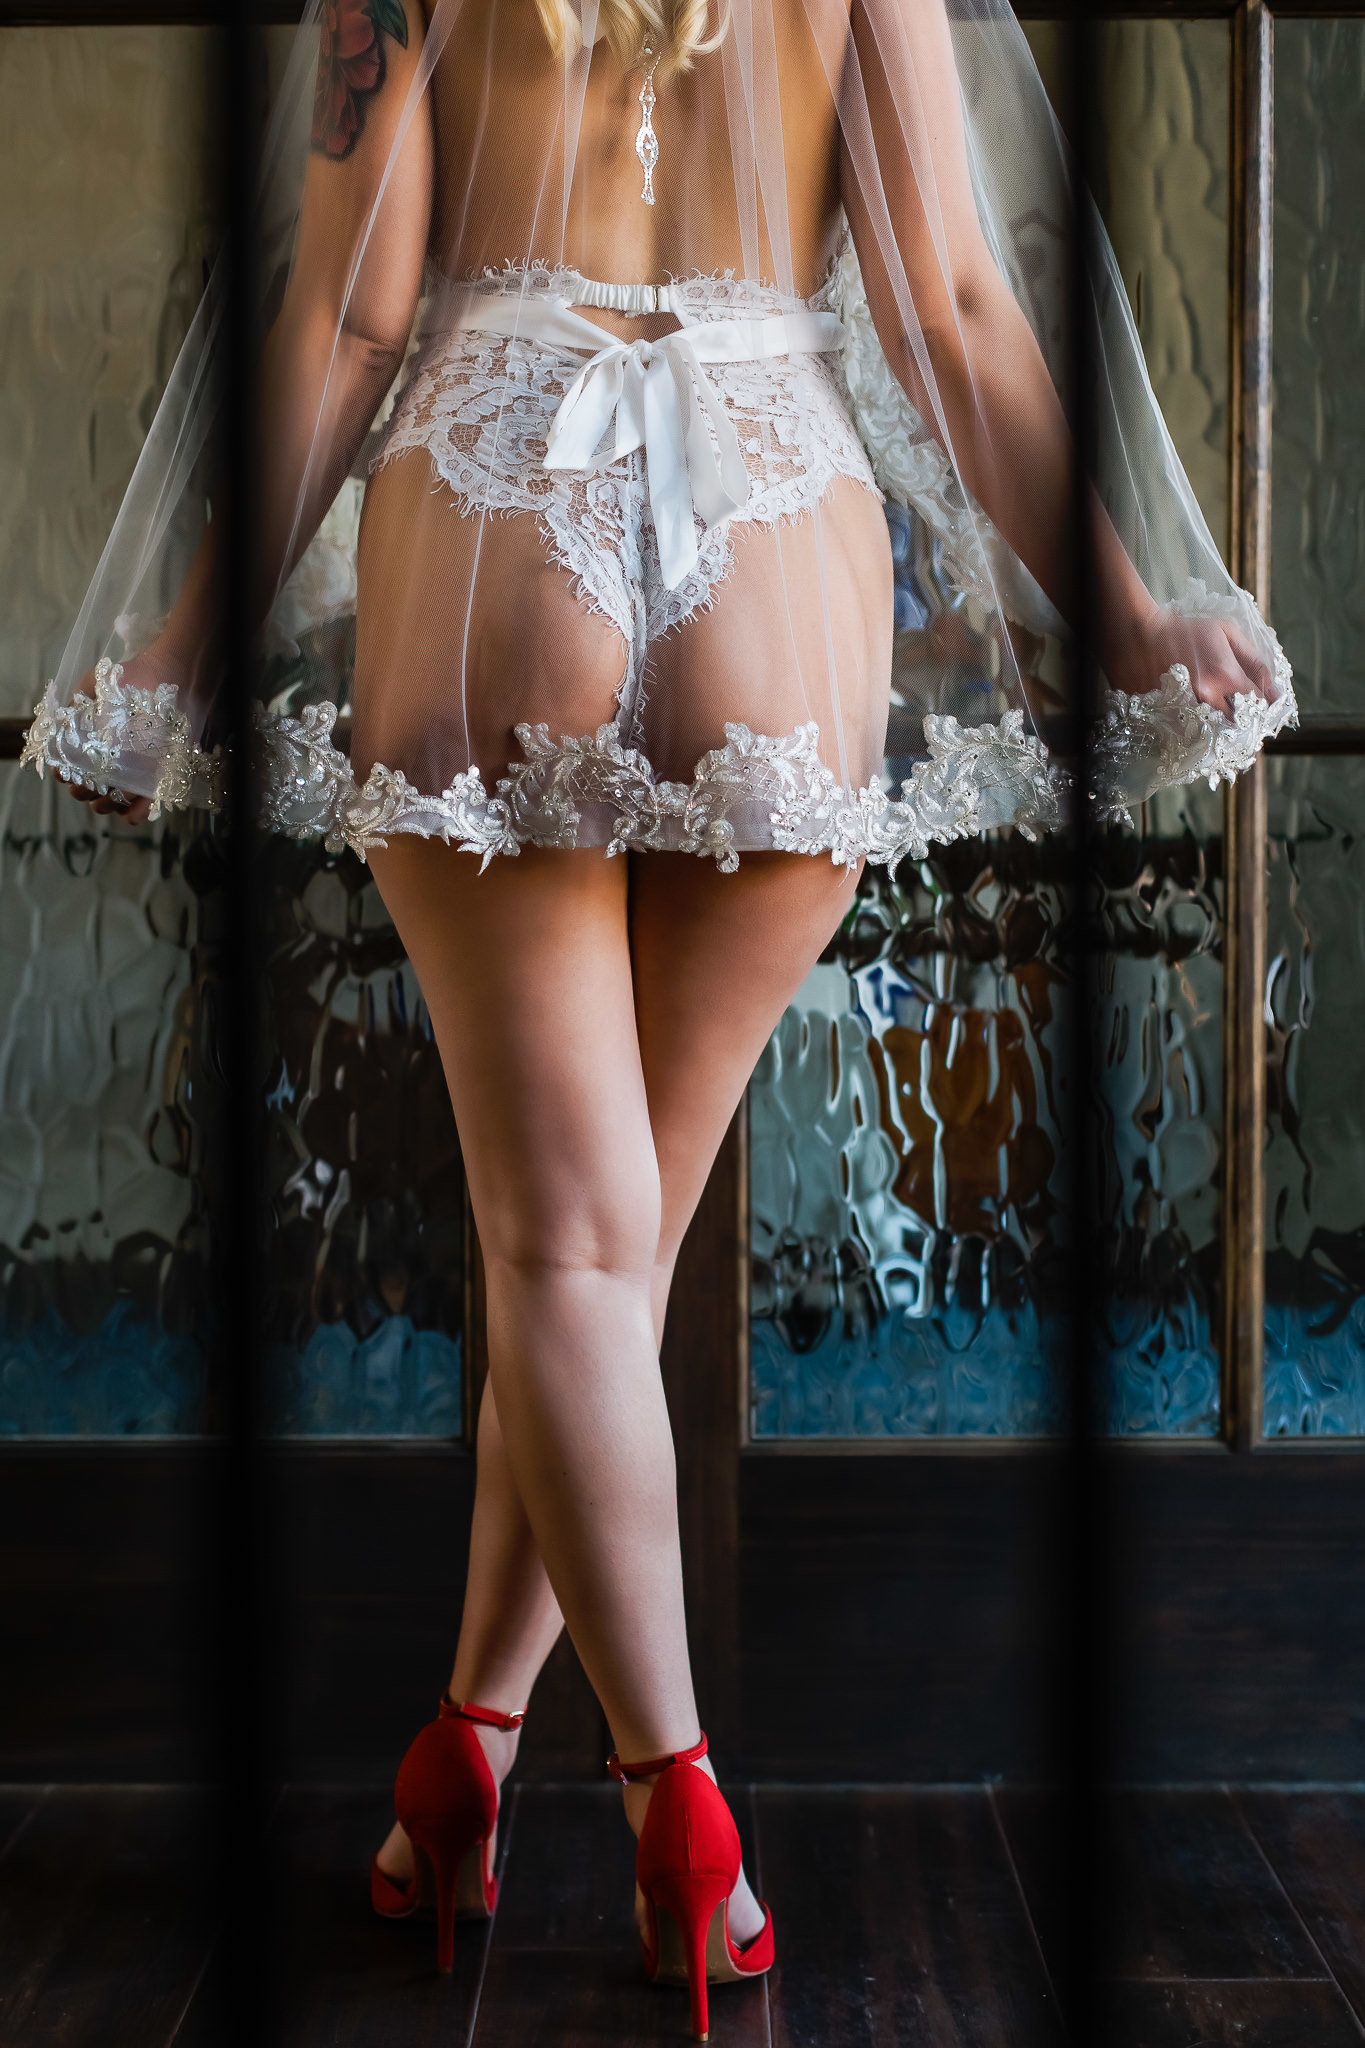 Boudoir photo of a bride wearing a veil and red high heels